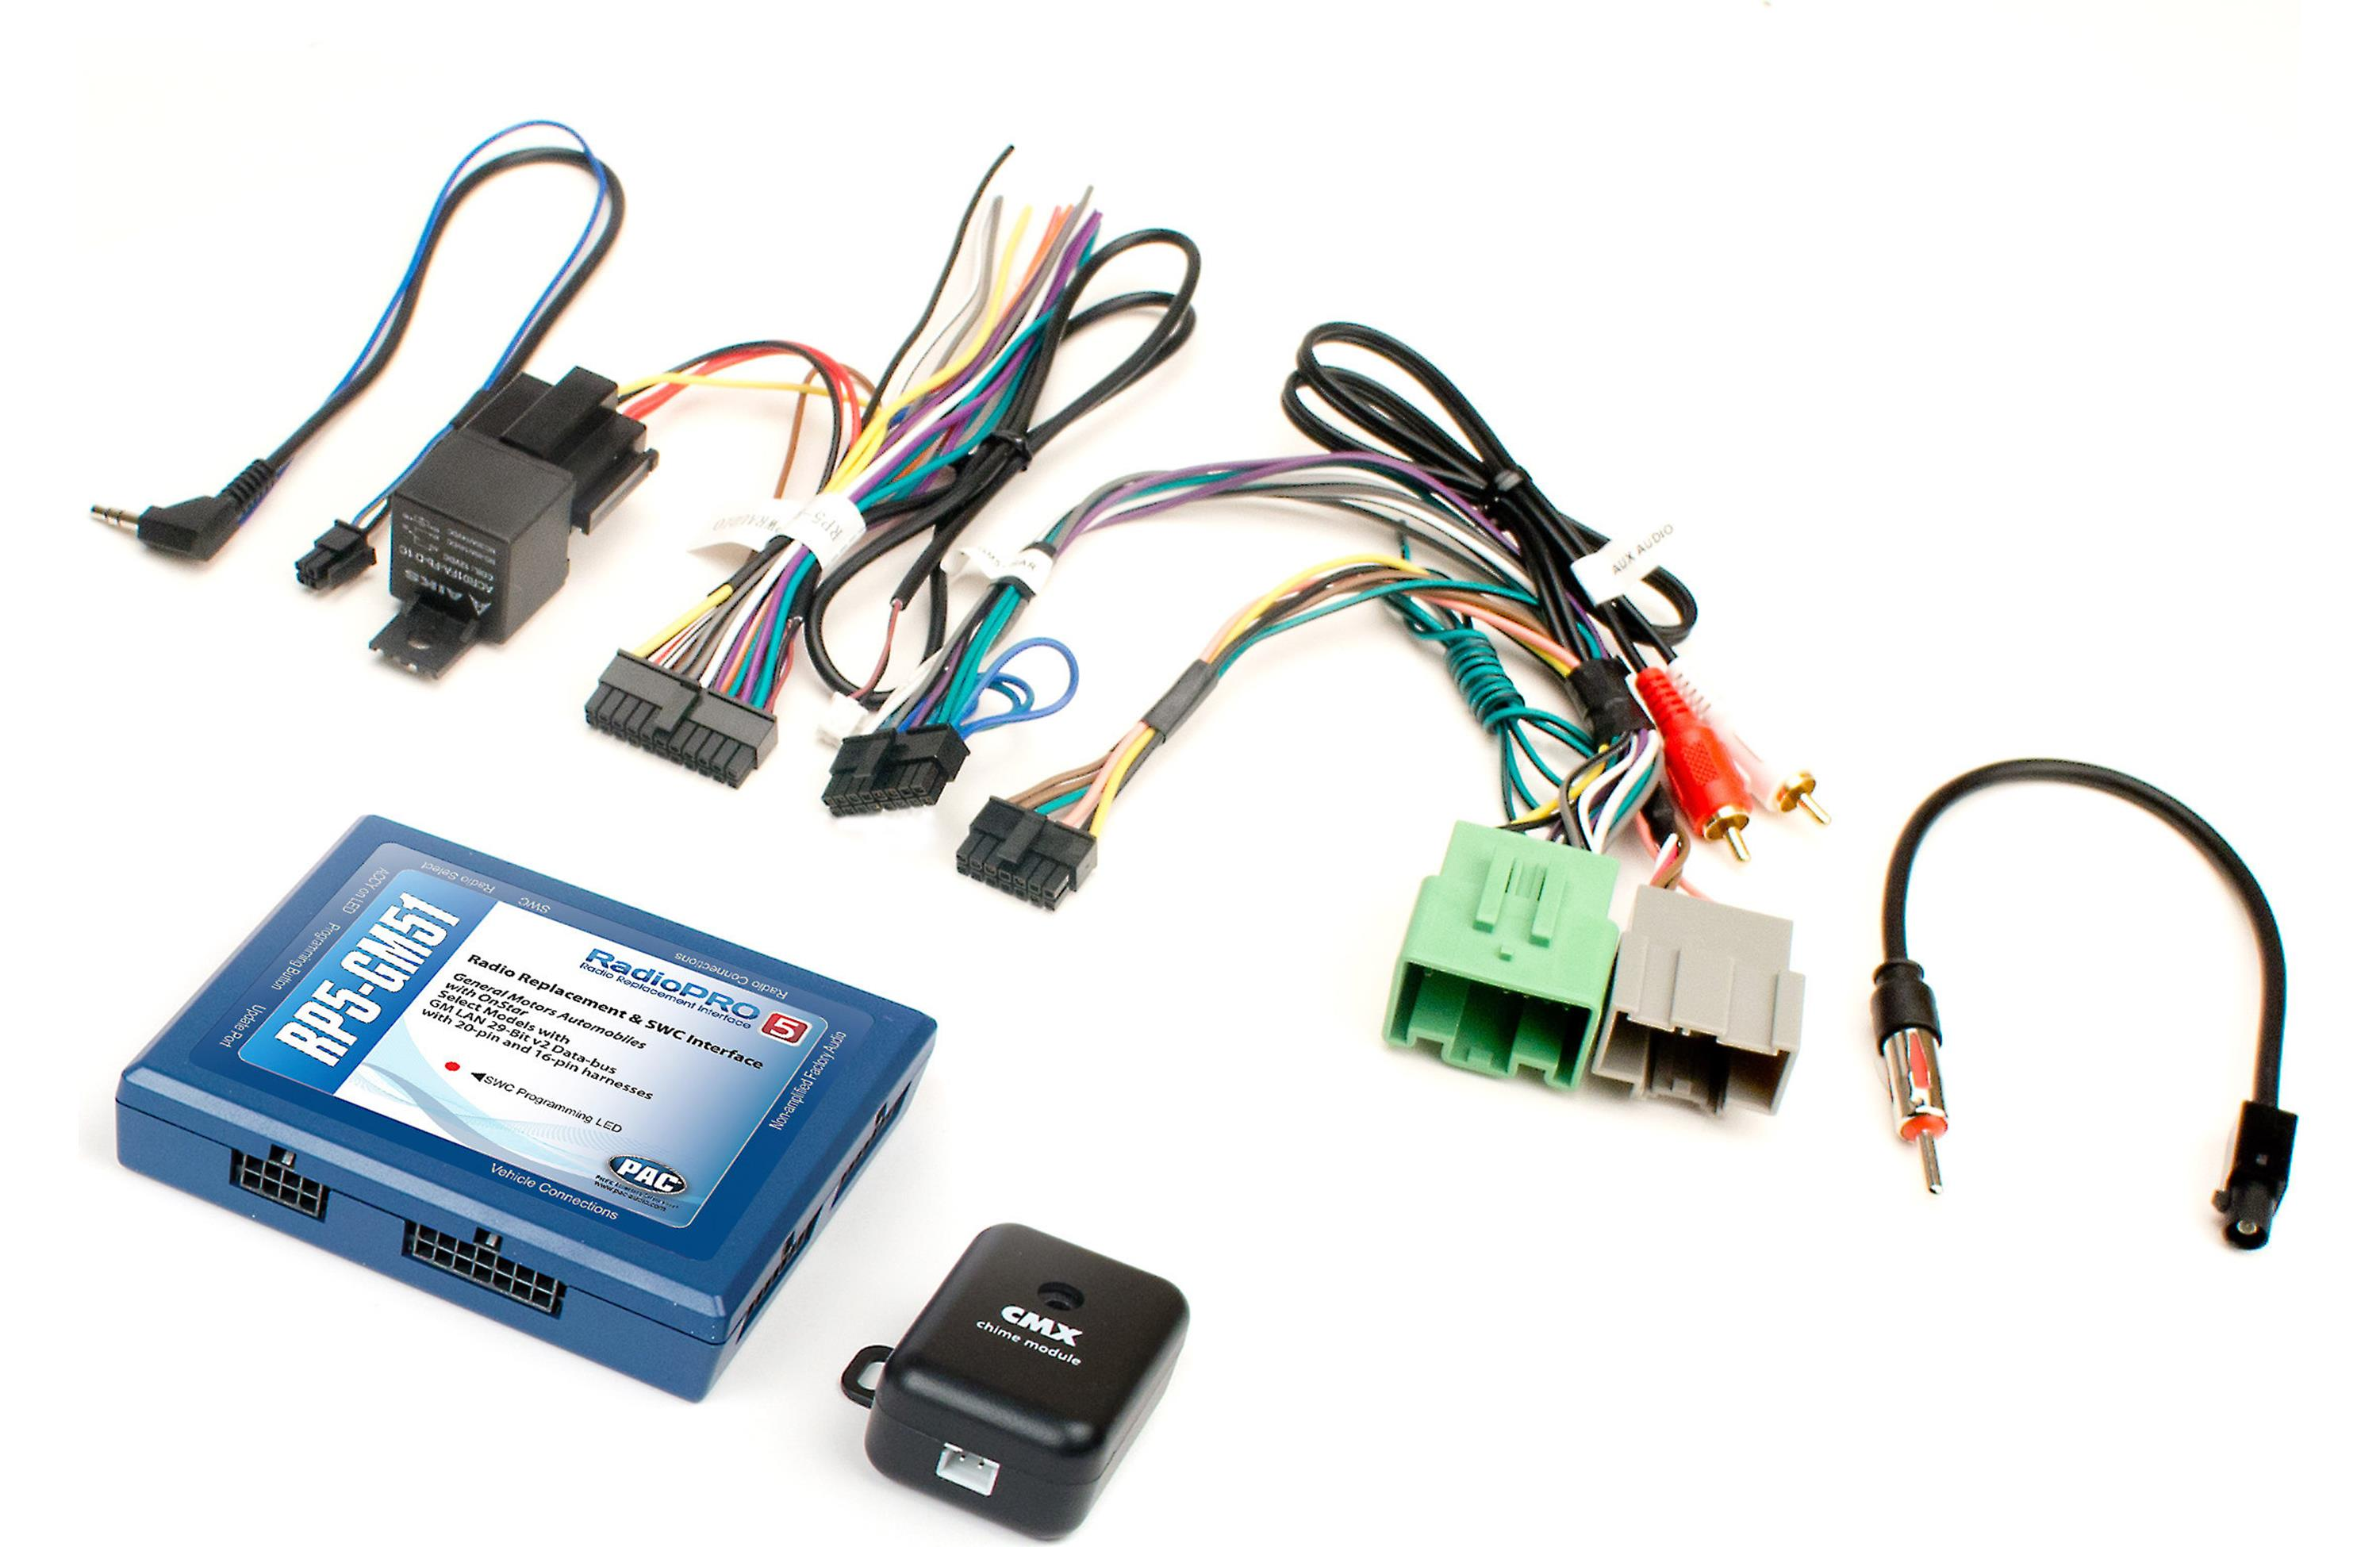 pac radiopro5 rp5-gm51 - car audio giants pac 80 isolator wiring diagram pac radio pro wiring diagram